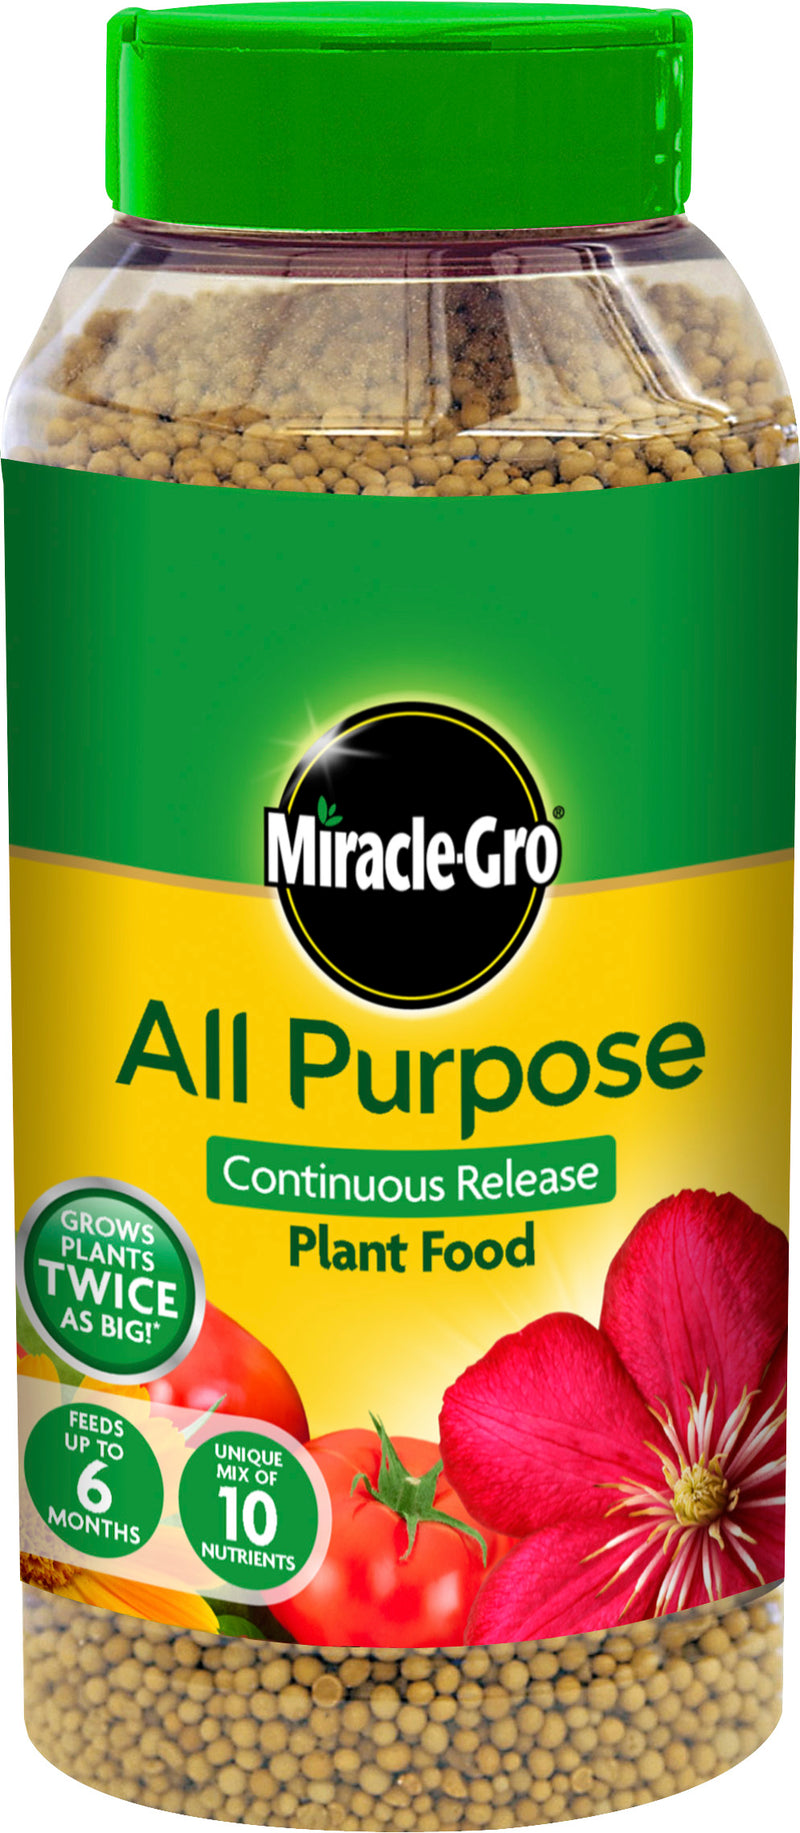 Miracle-Gro All Purpose Continuous Release Plant Food 1KG Shaker Jar XXXX